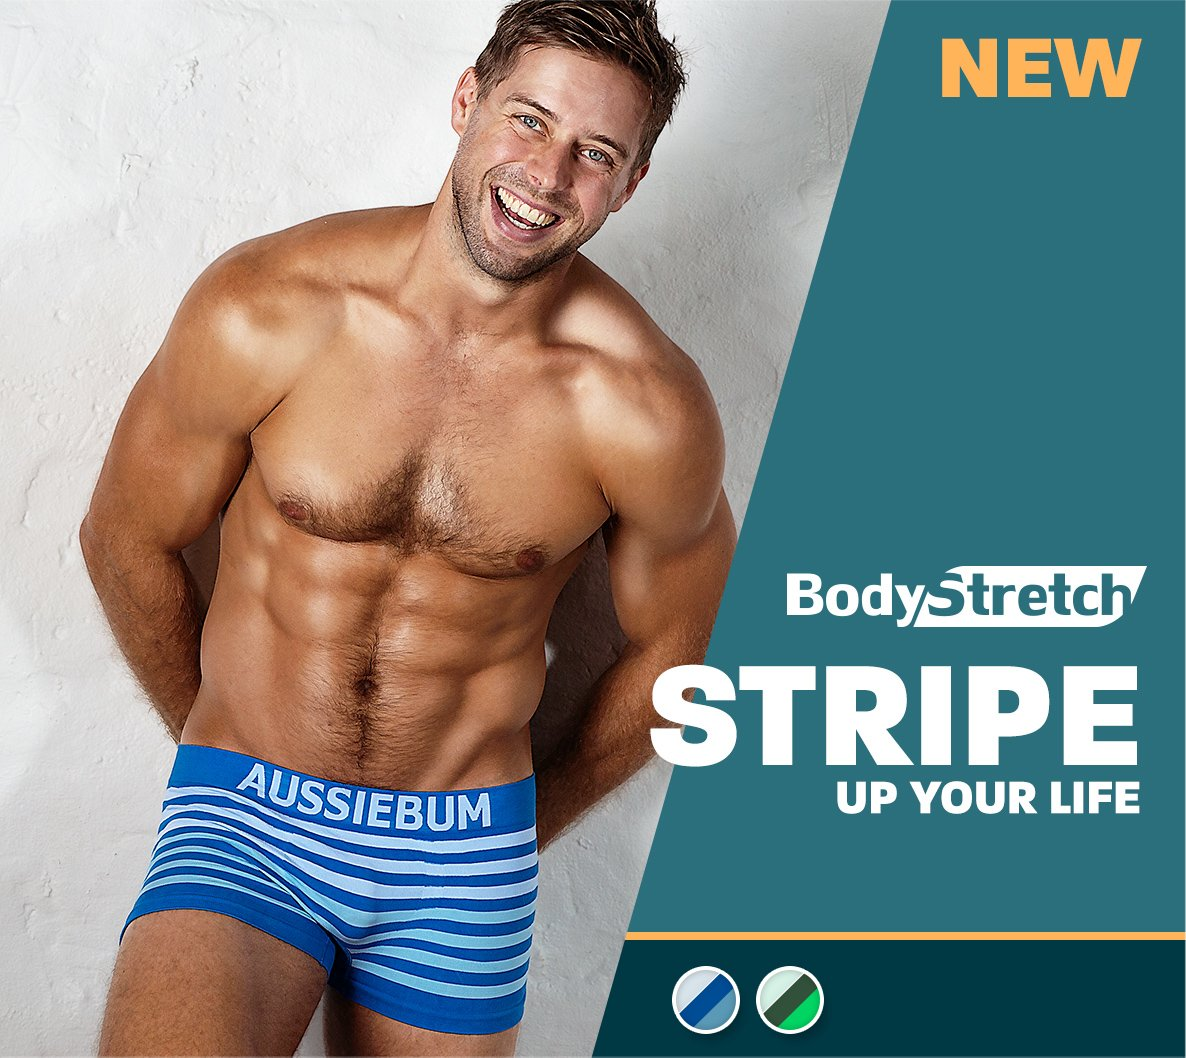 Bodystretch Bluestone Homepage Image